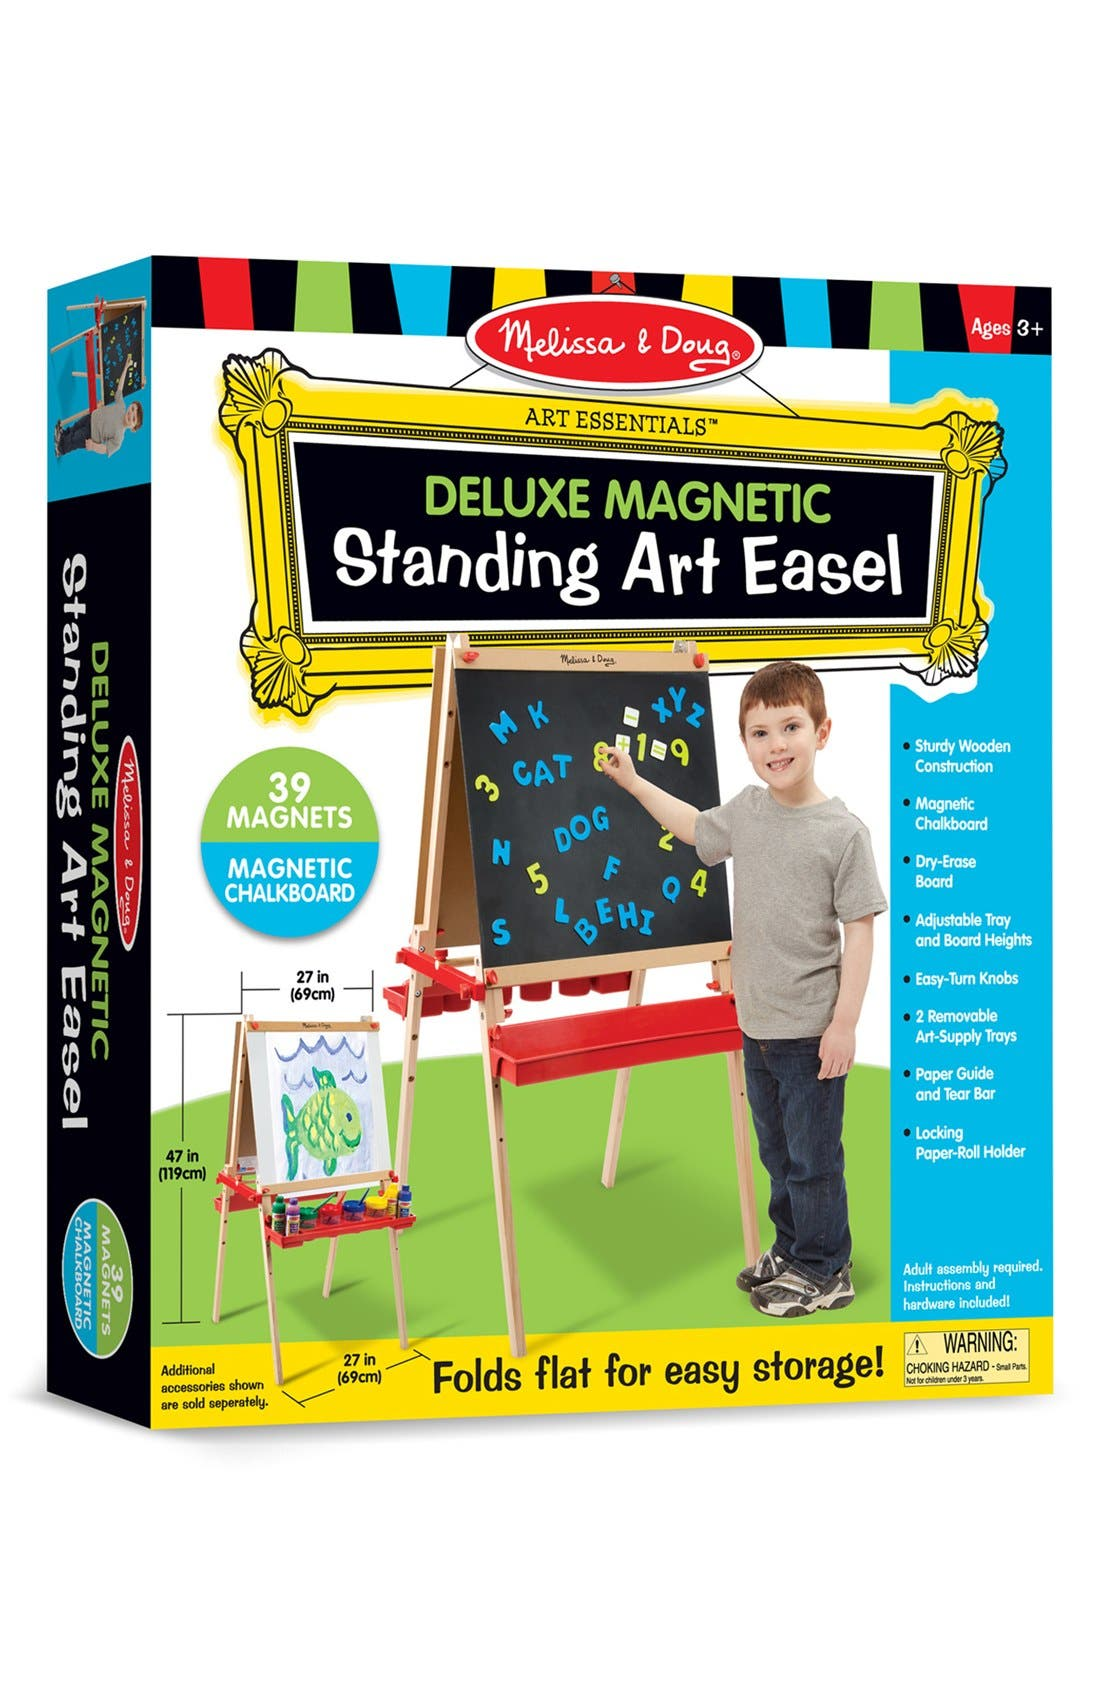 Alternate Image 1 Selected - Melissa & Doug Wooden Easel with Chalkboard and Magnet Board